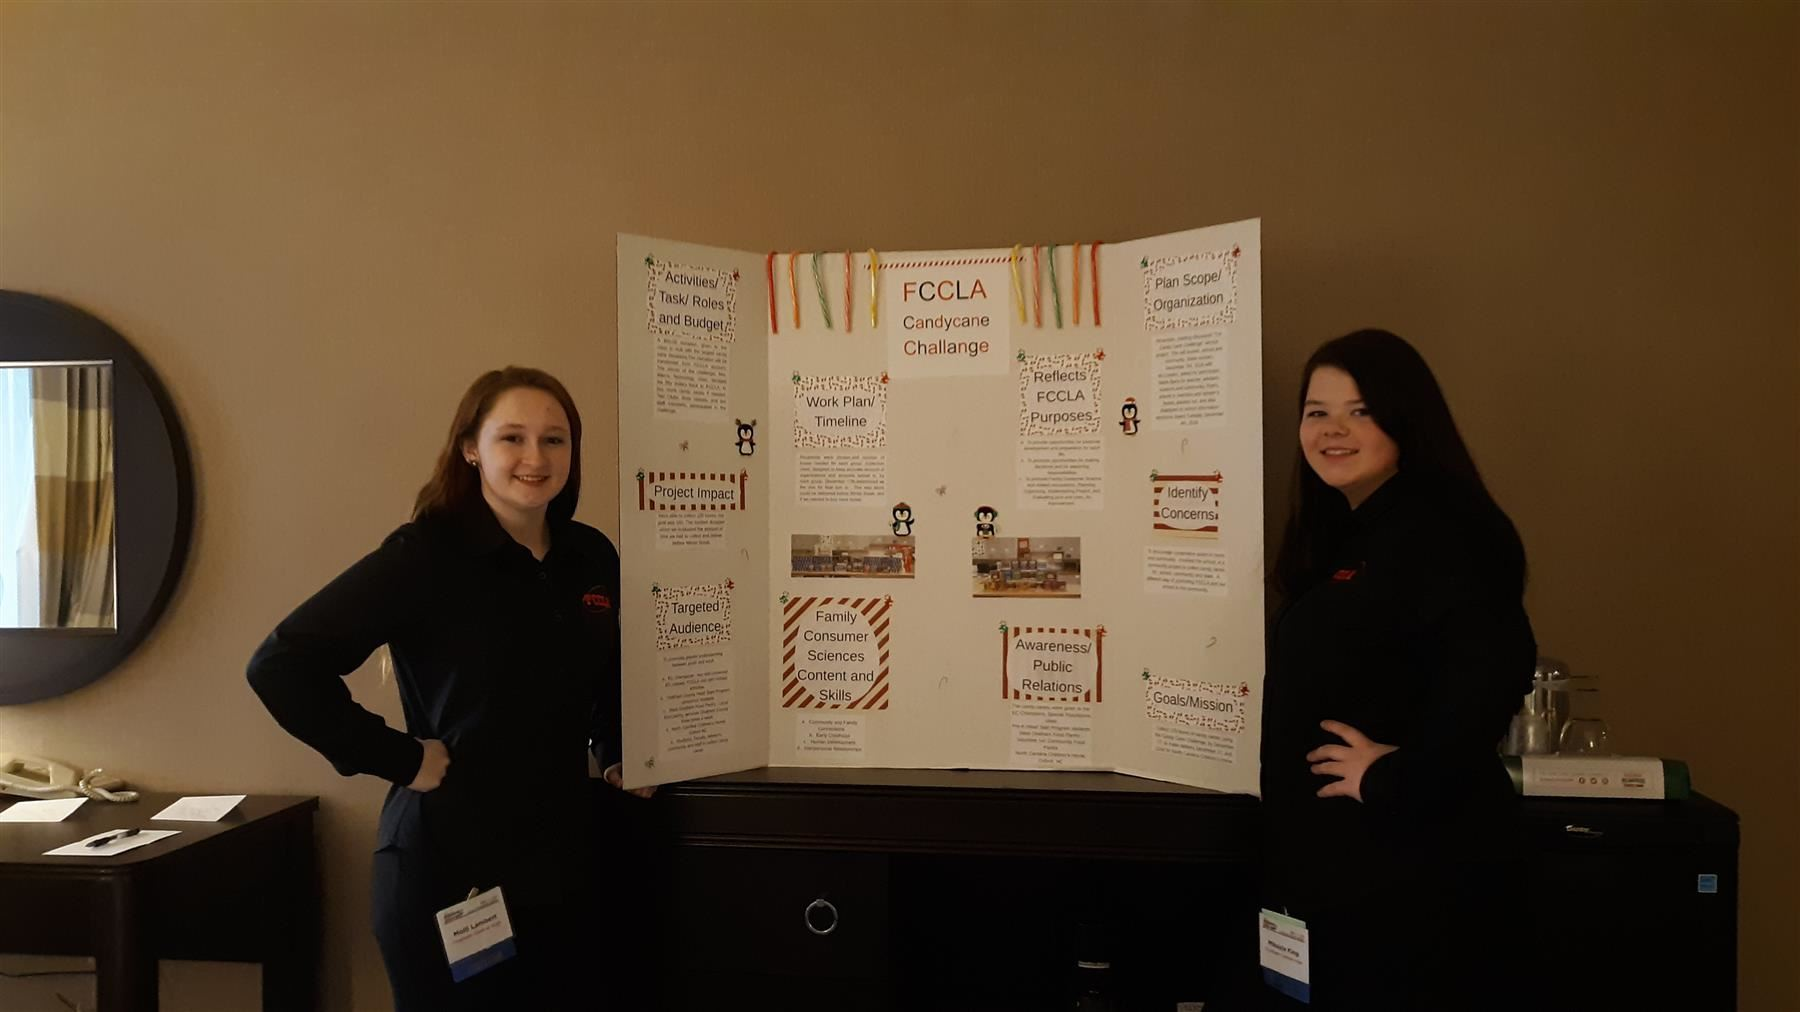 Molli Lambert (left) and Mikayla King earned bronze medals during state-level FCCLA competition in early April in Greensboro.